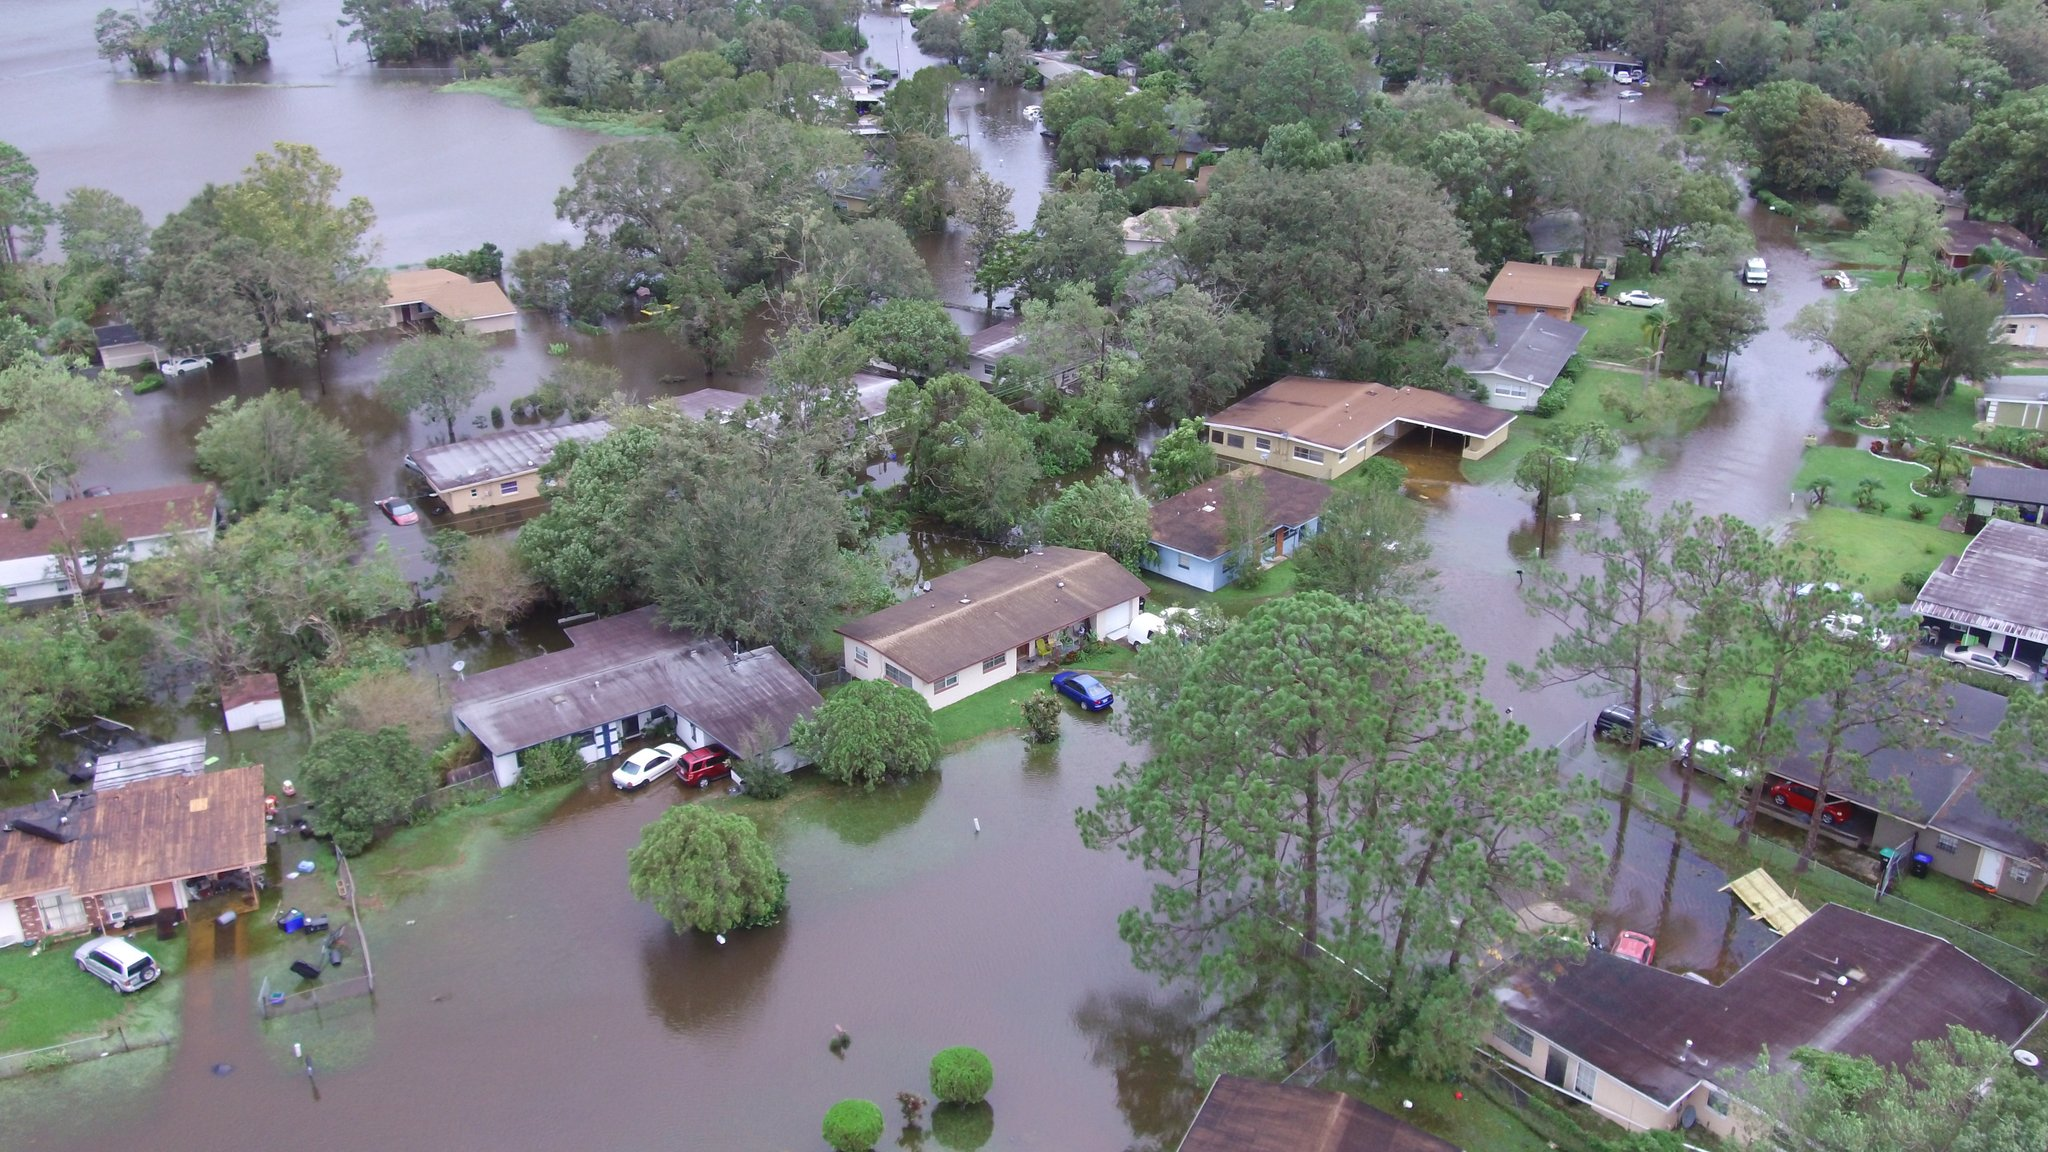 <div class='meta'><div class='origin-logo' data-origin='none'></div><span class='caption-text' data-credit='OCFireRescue/Twitter'>An aerial photo shows flooding in the Orlo Vista area of Orange County.</span></div>